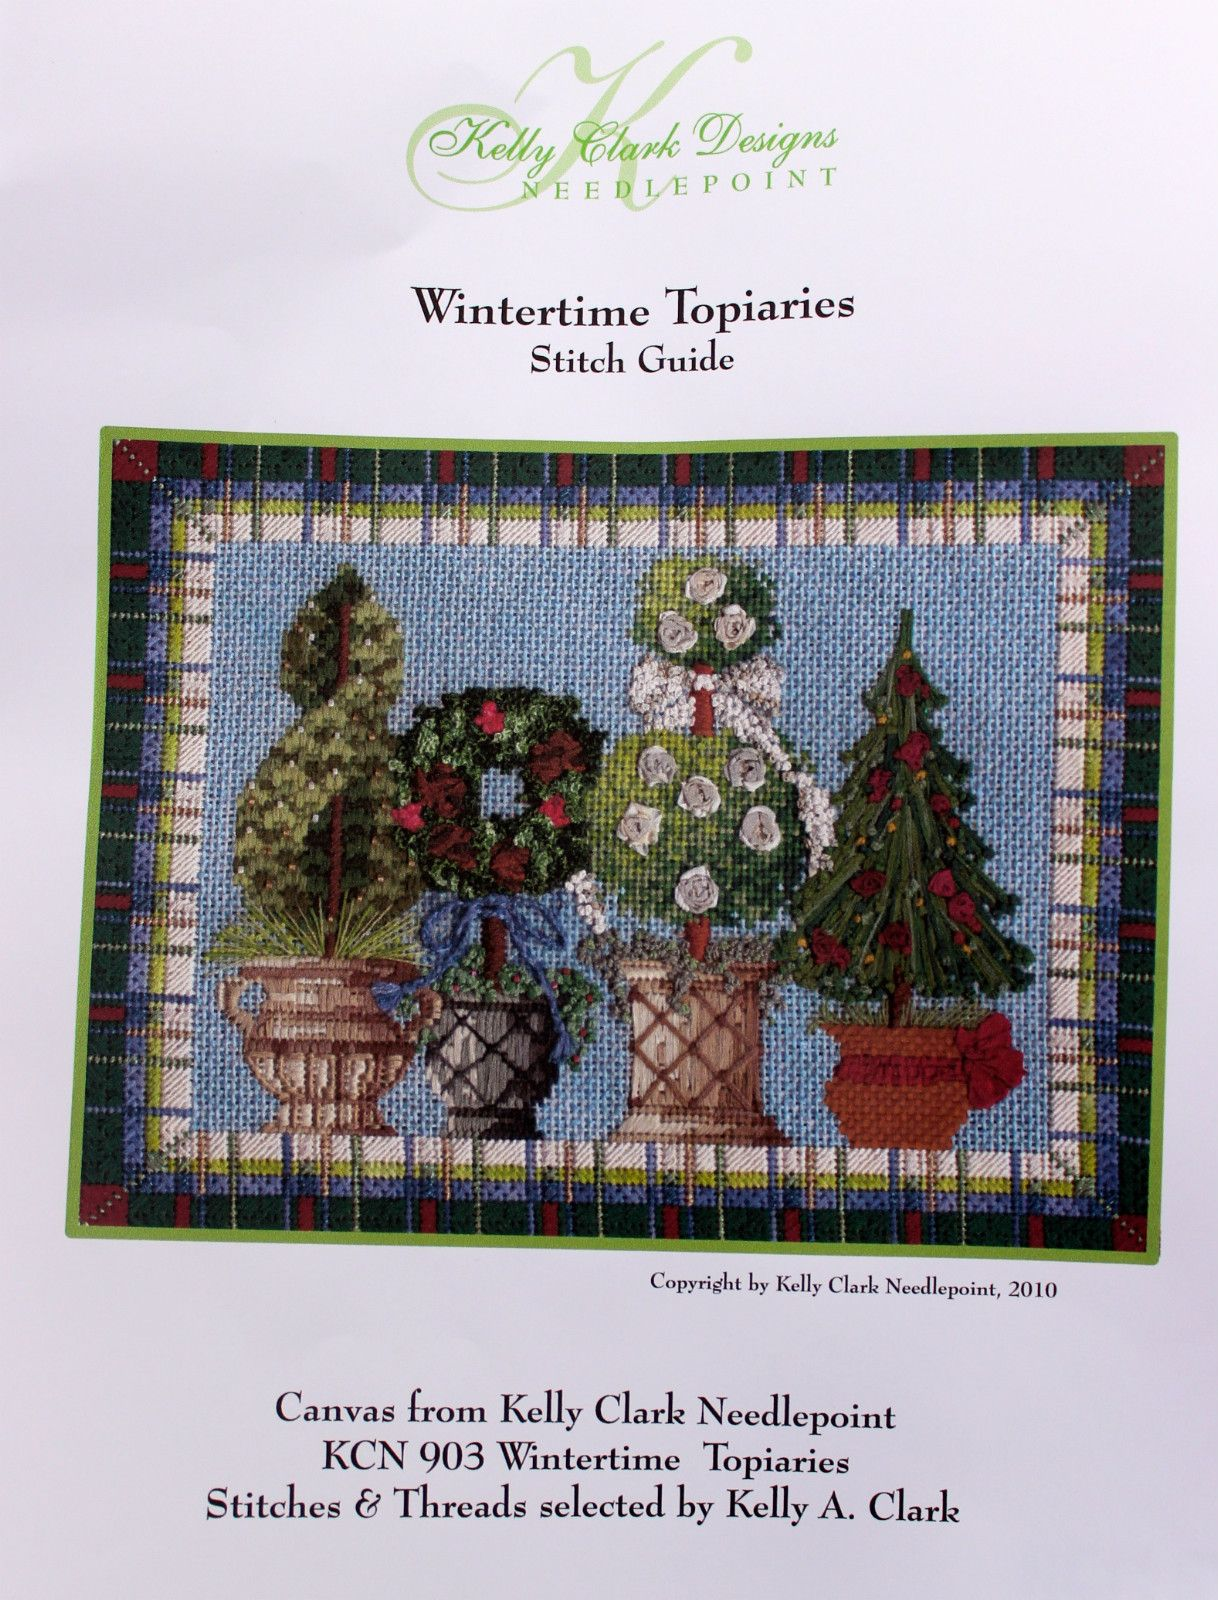 Kelly Clark NP Wintertime Topiaries Stitch Guide HP Needlepoint Canvas   eBay